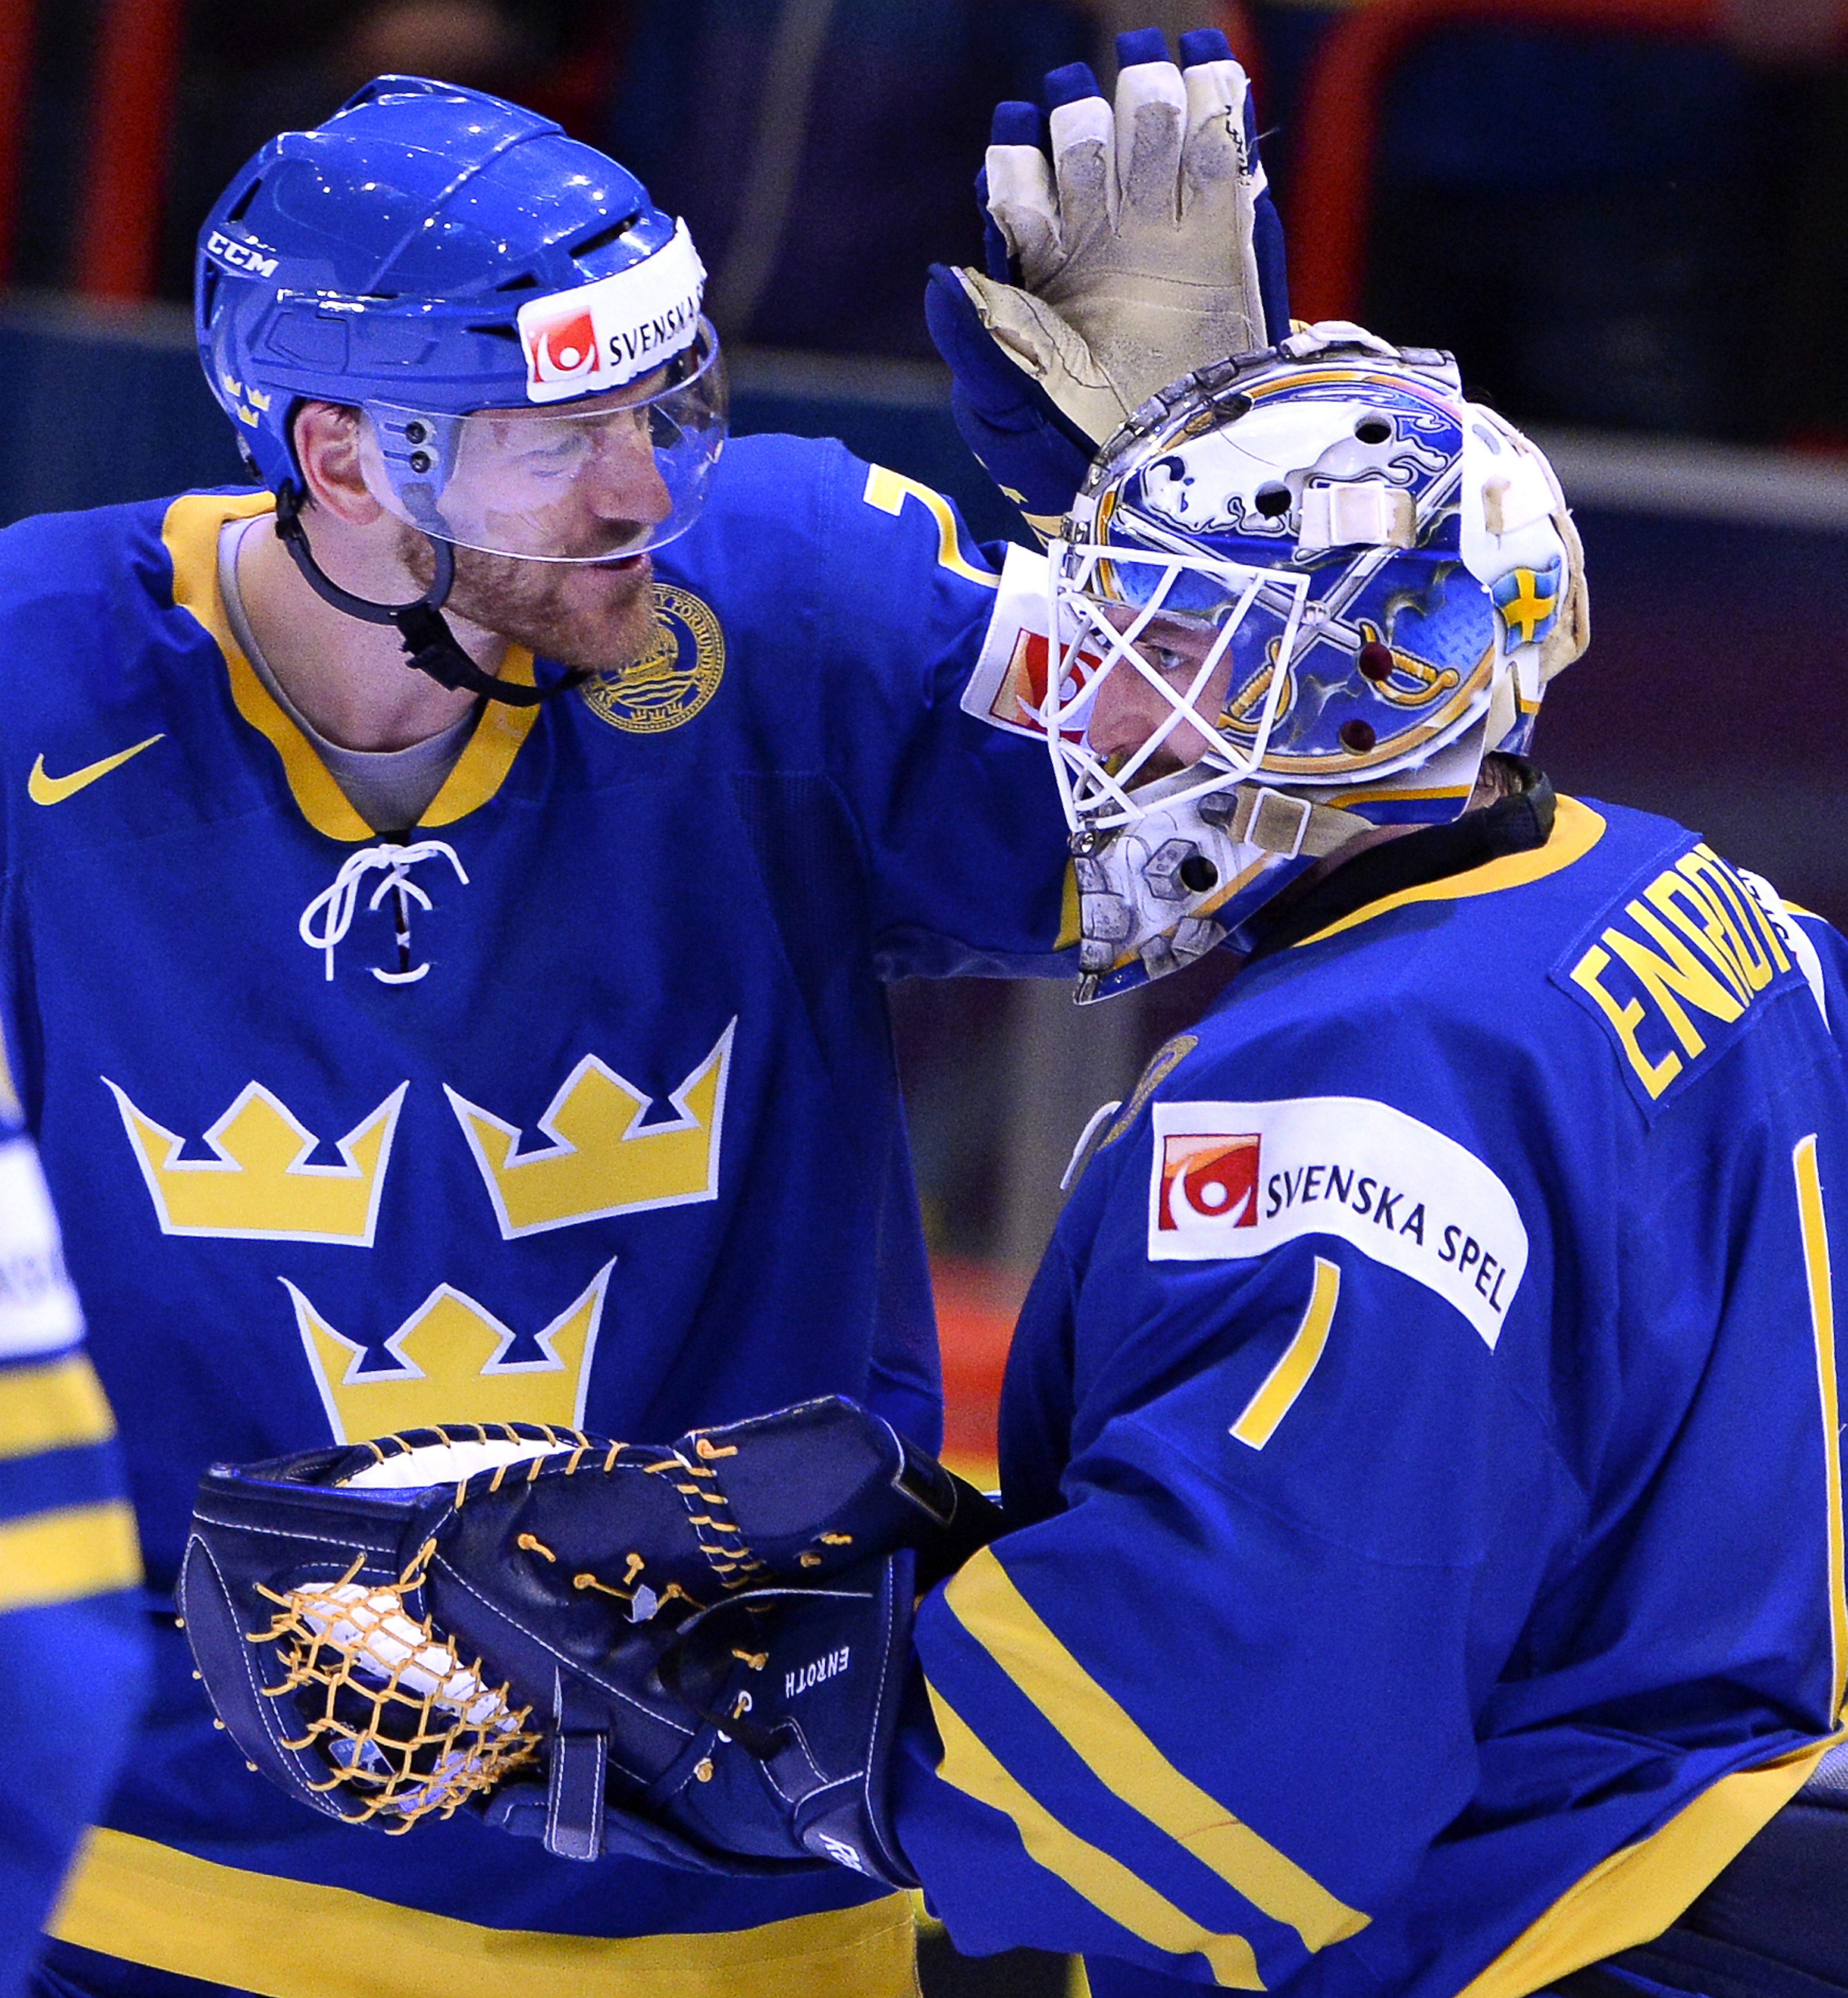 Henrik Tallinder, left, is back with the Sabres and goalie Jhonas Enroth. They helped Sweden win gold in the World Championships.